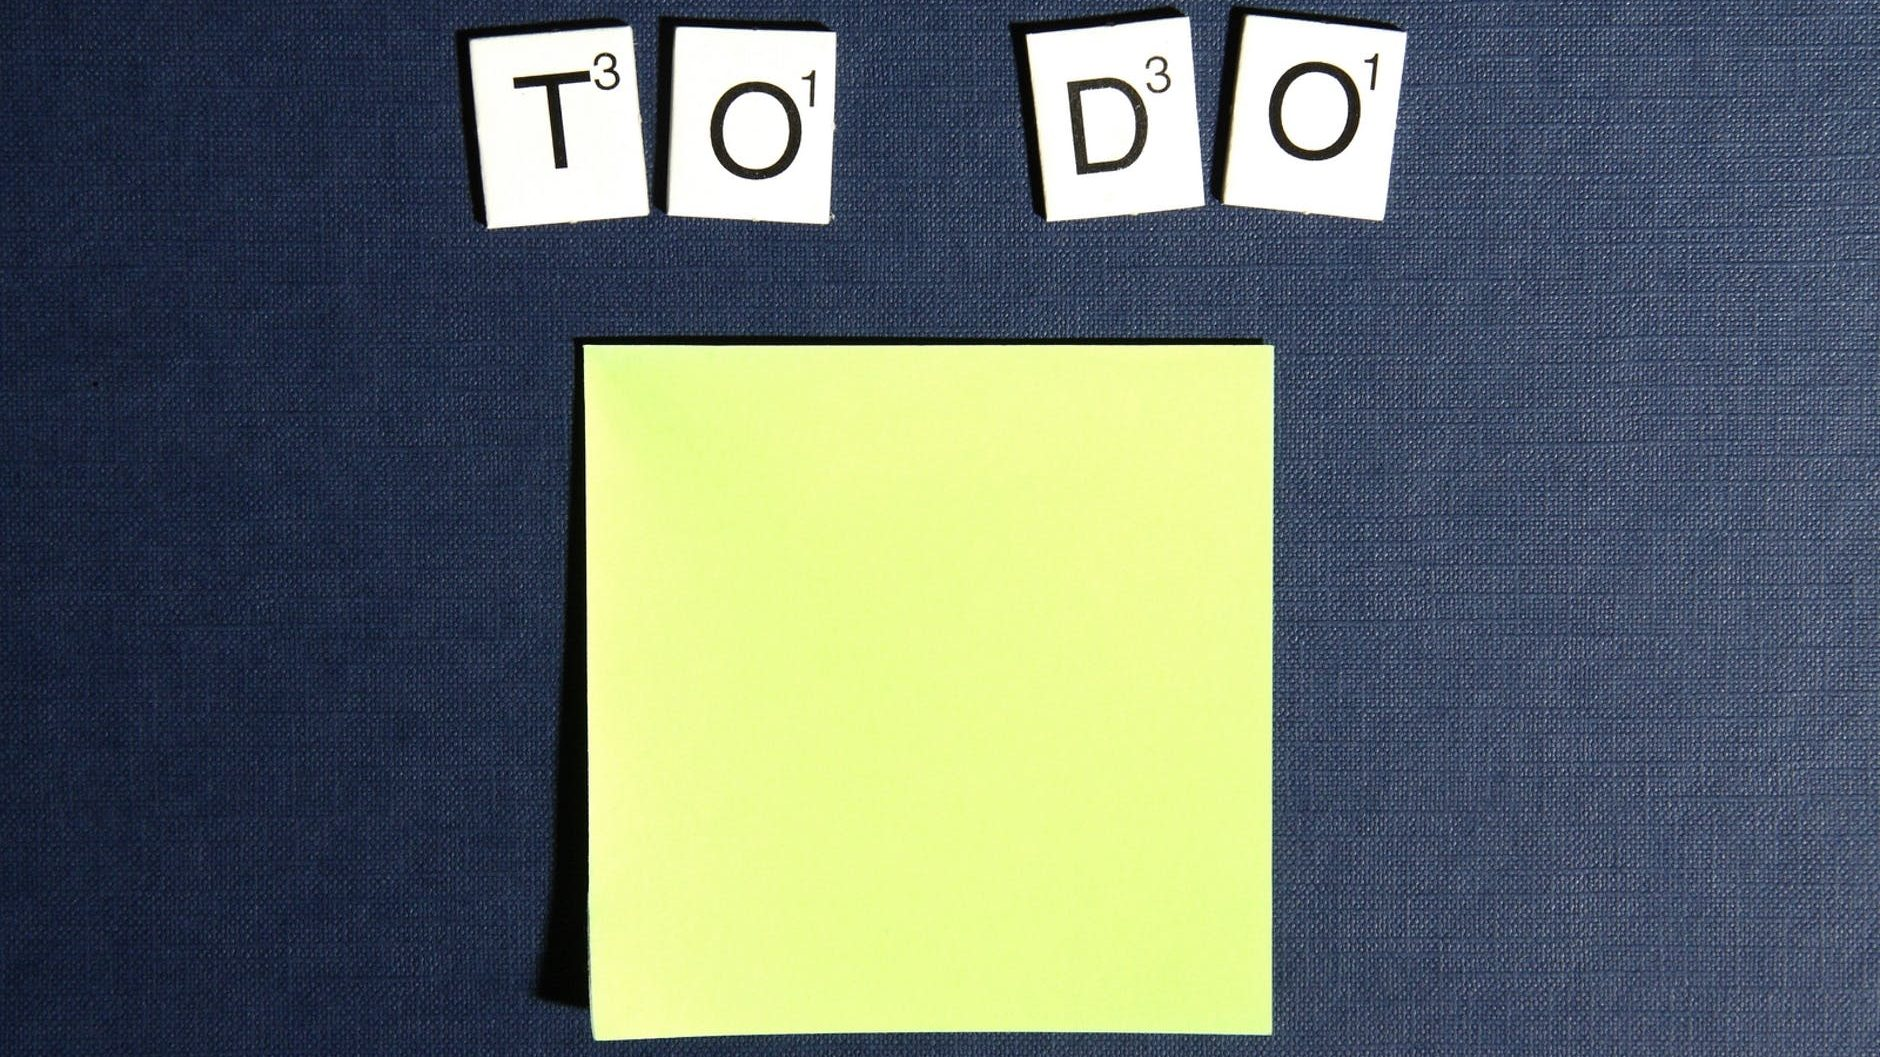 To-Do List Bankruptcy Aftermath: Plans, Progress, Problems